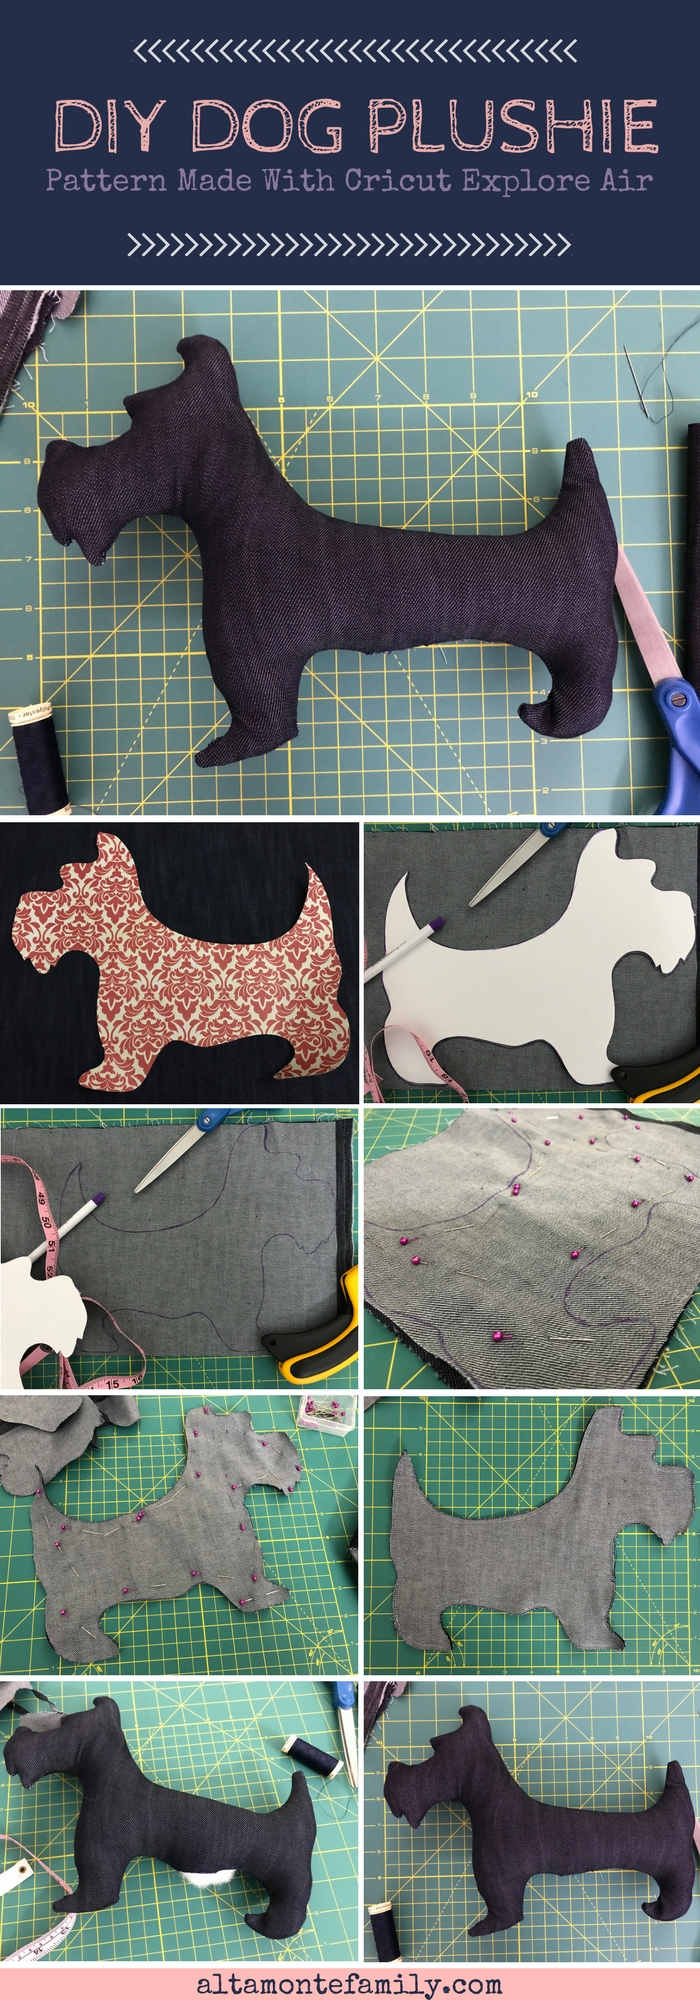 Cricut Explore Air Sewing Pattern - DIY Dog Plushie - Kids Craft Ideas